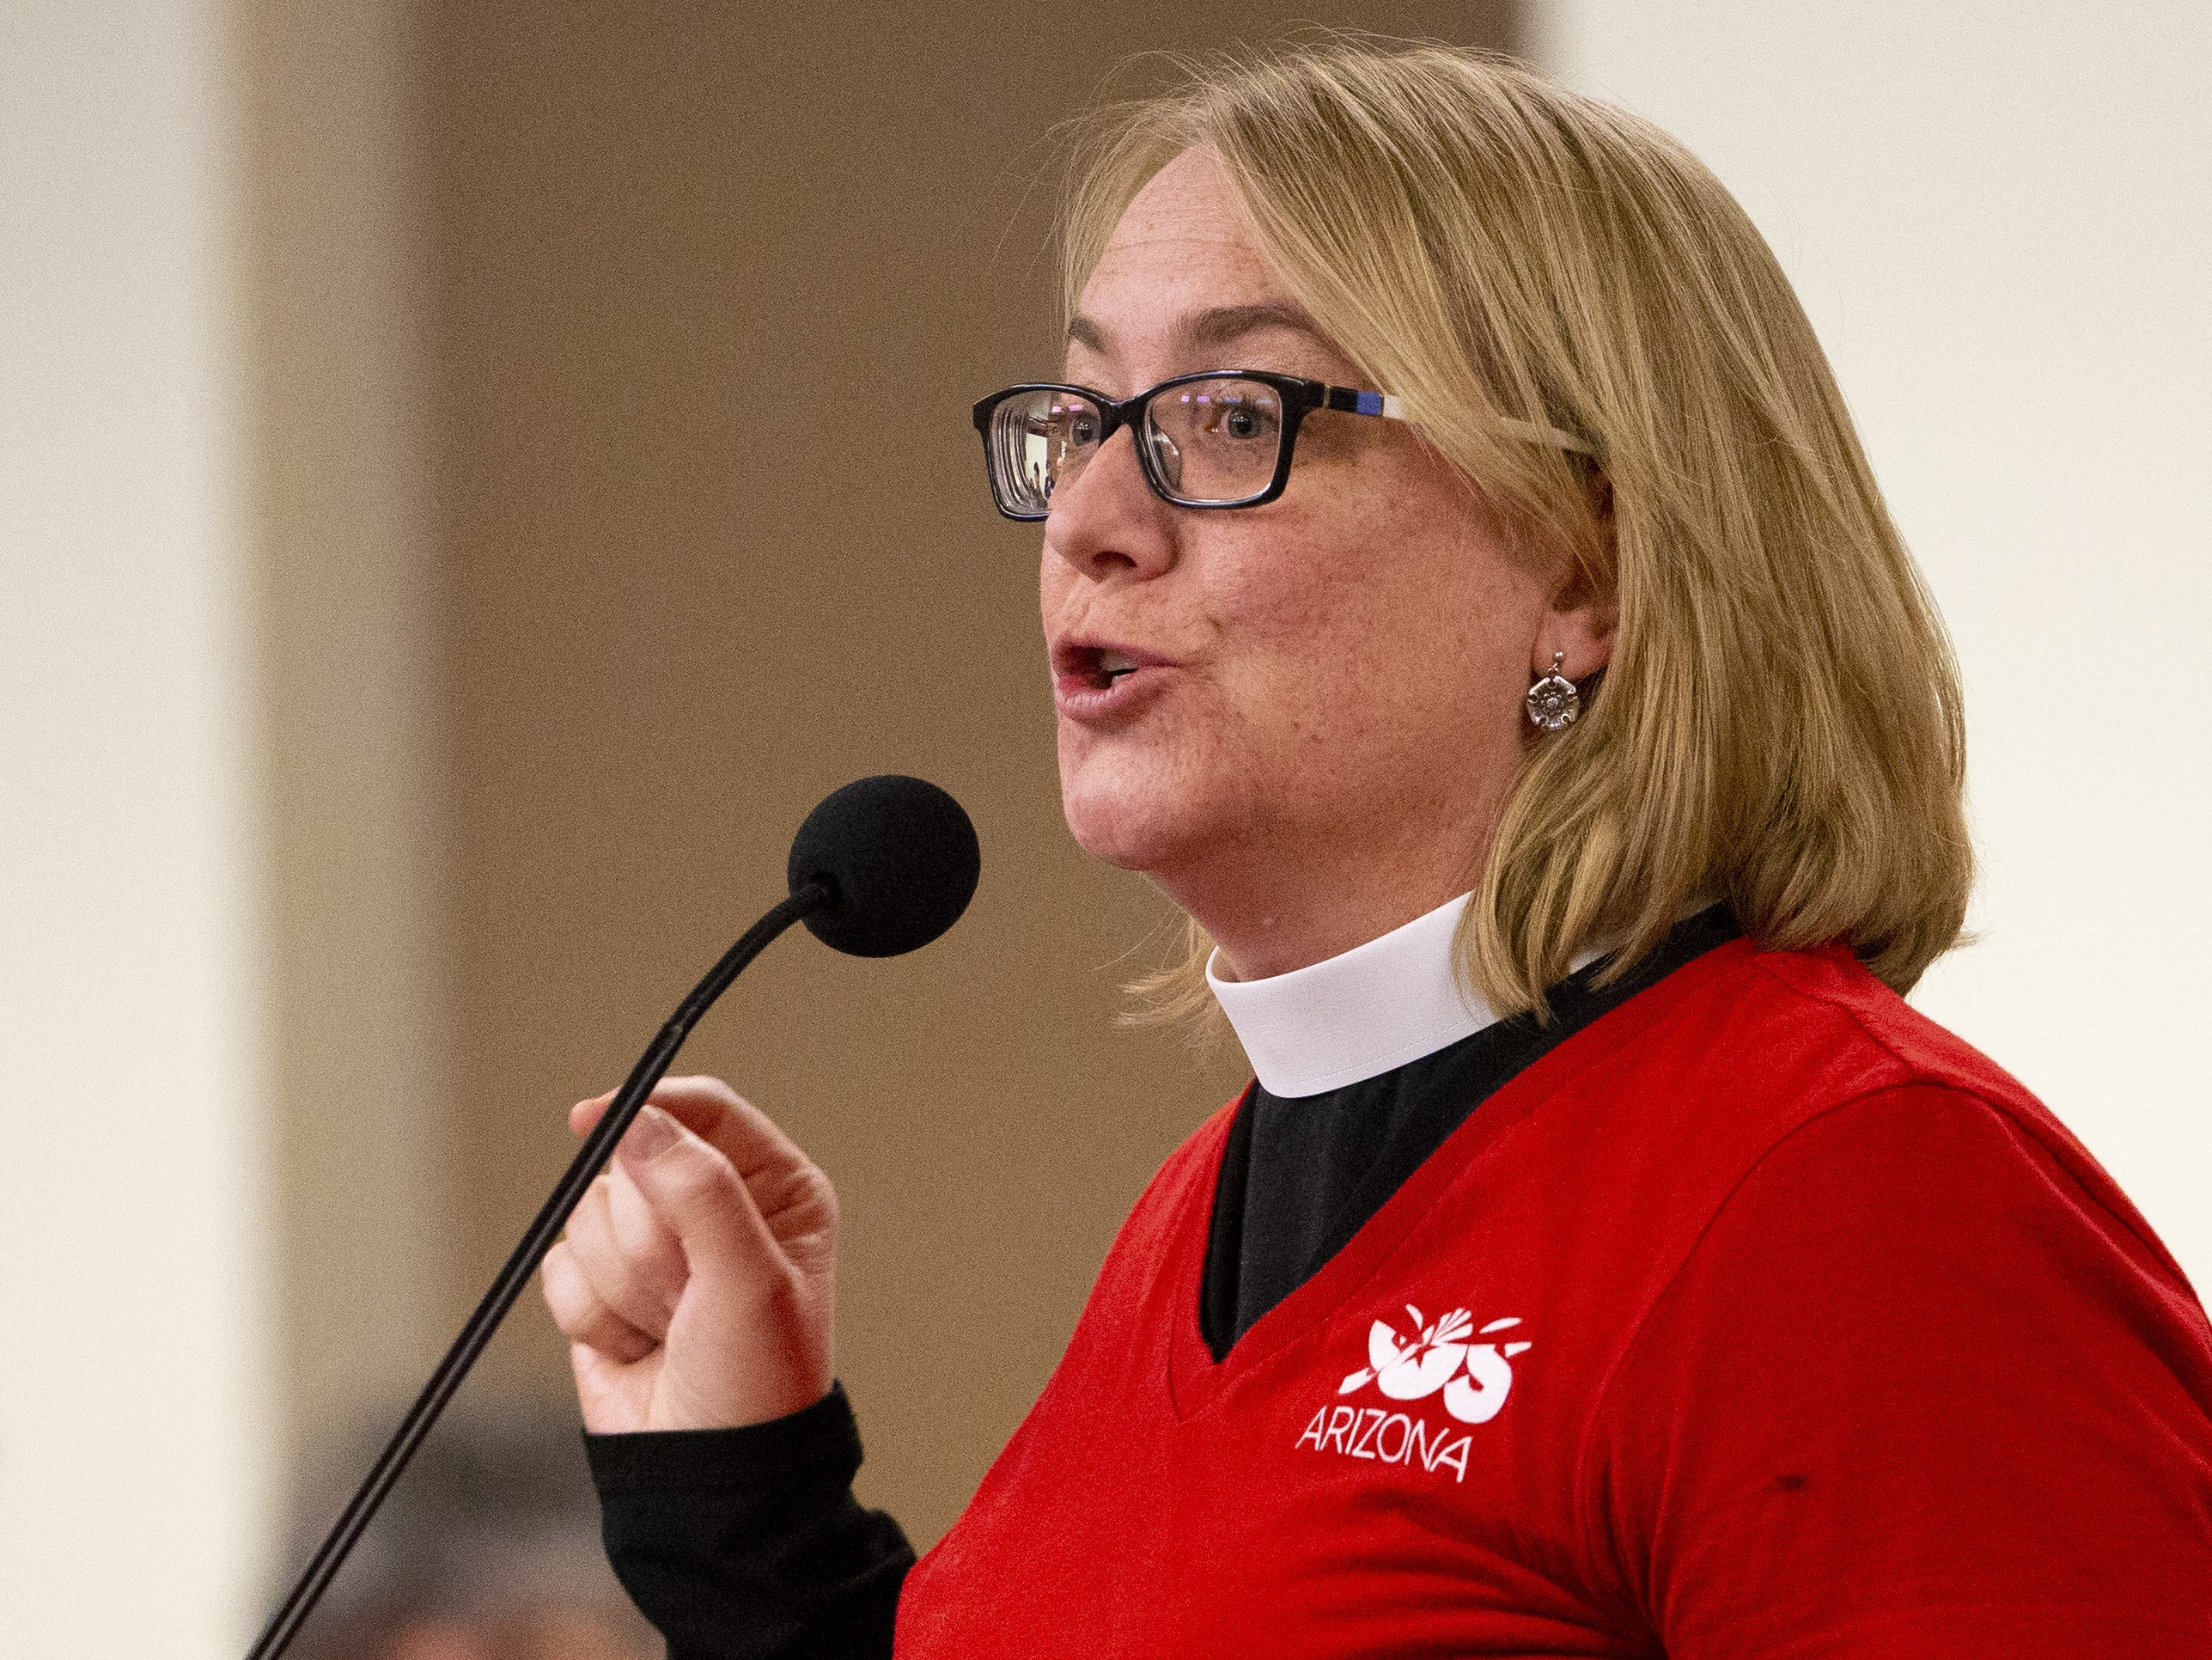 Rev. Anne Ellsworth speaks during a hearing on school vouchers in a senate hearing room at the state Capitol in Phoenix on February 13.